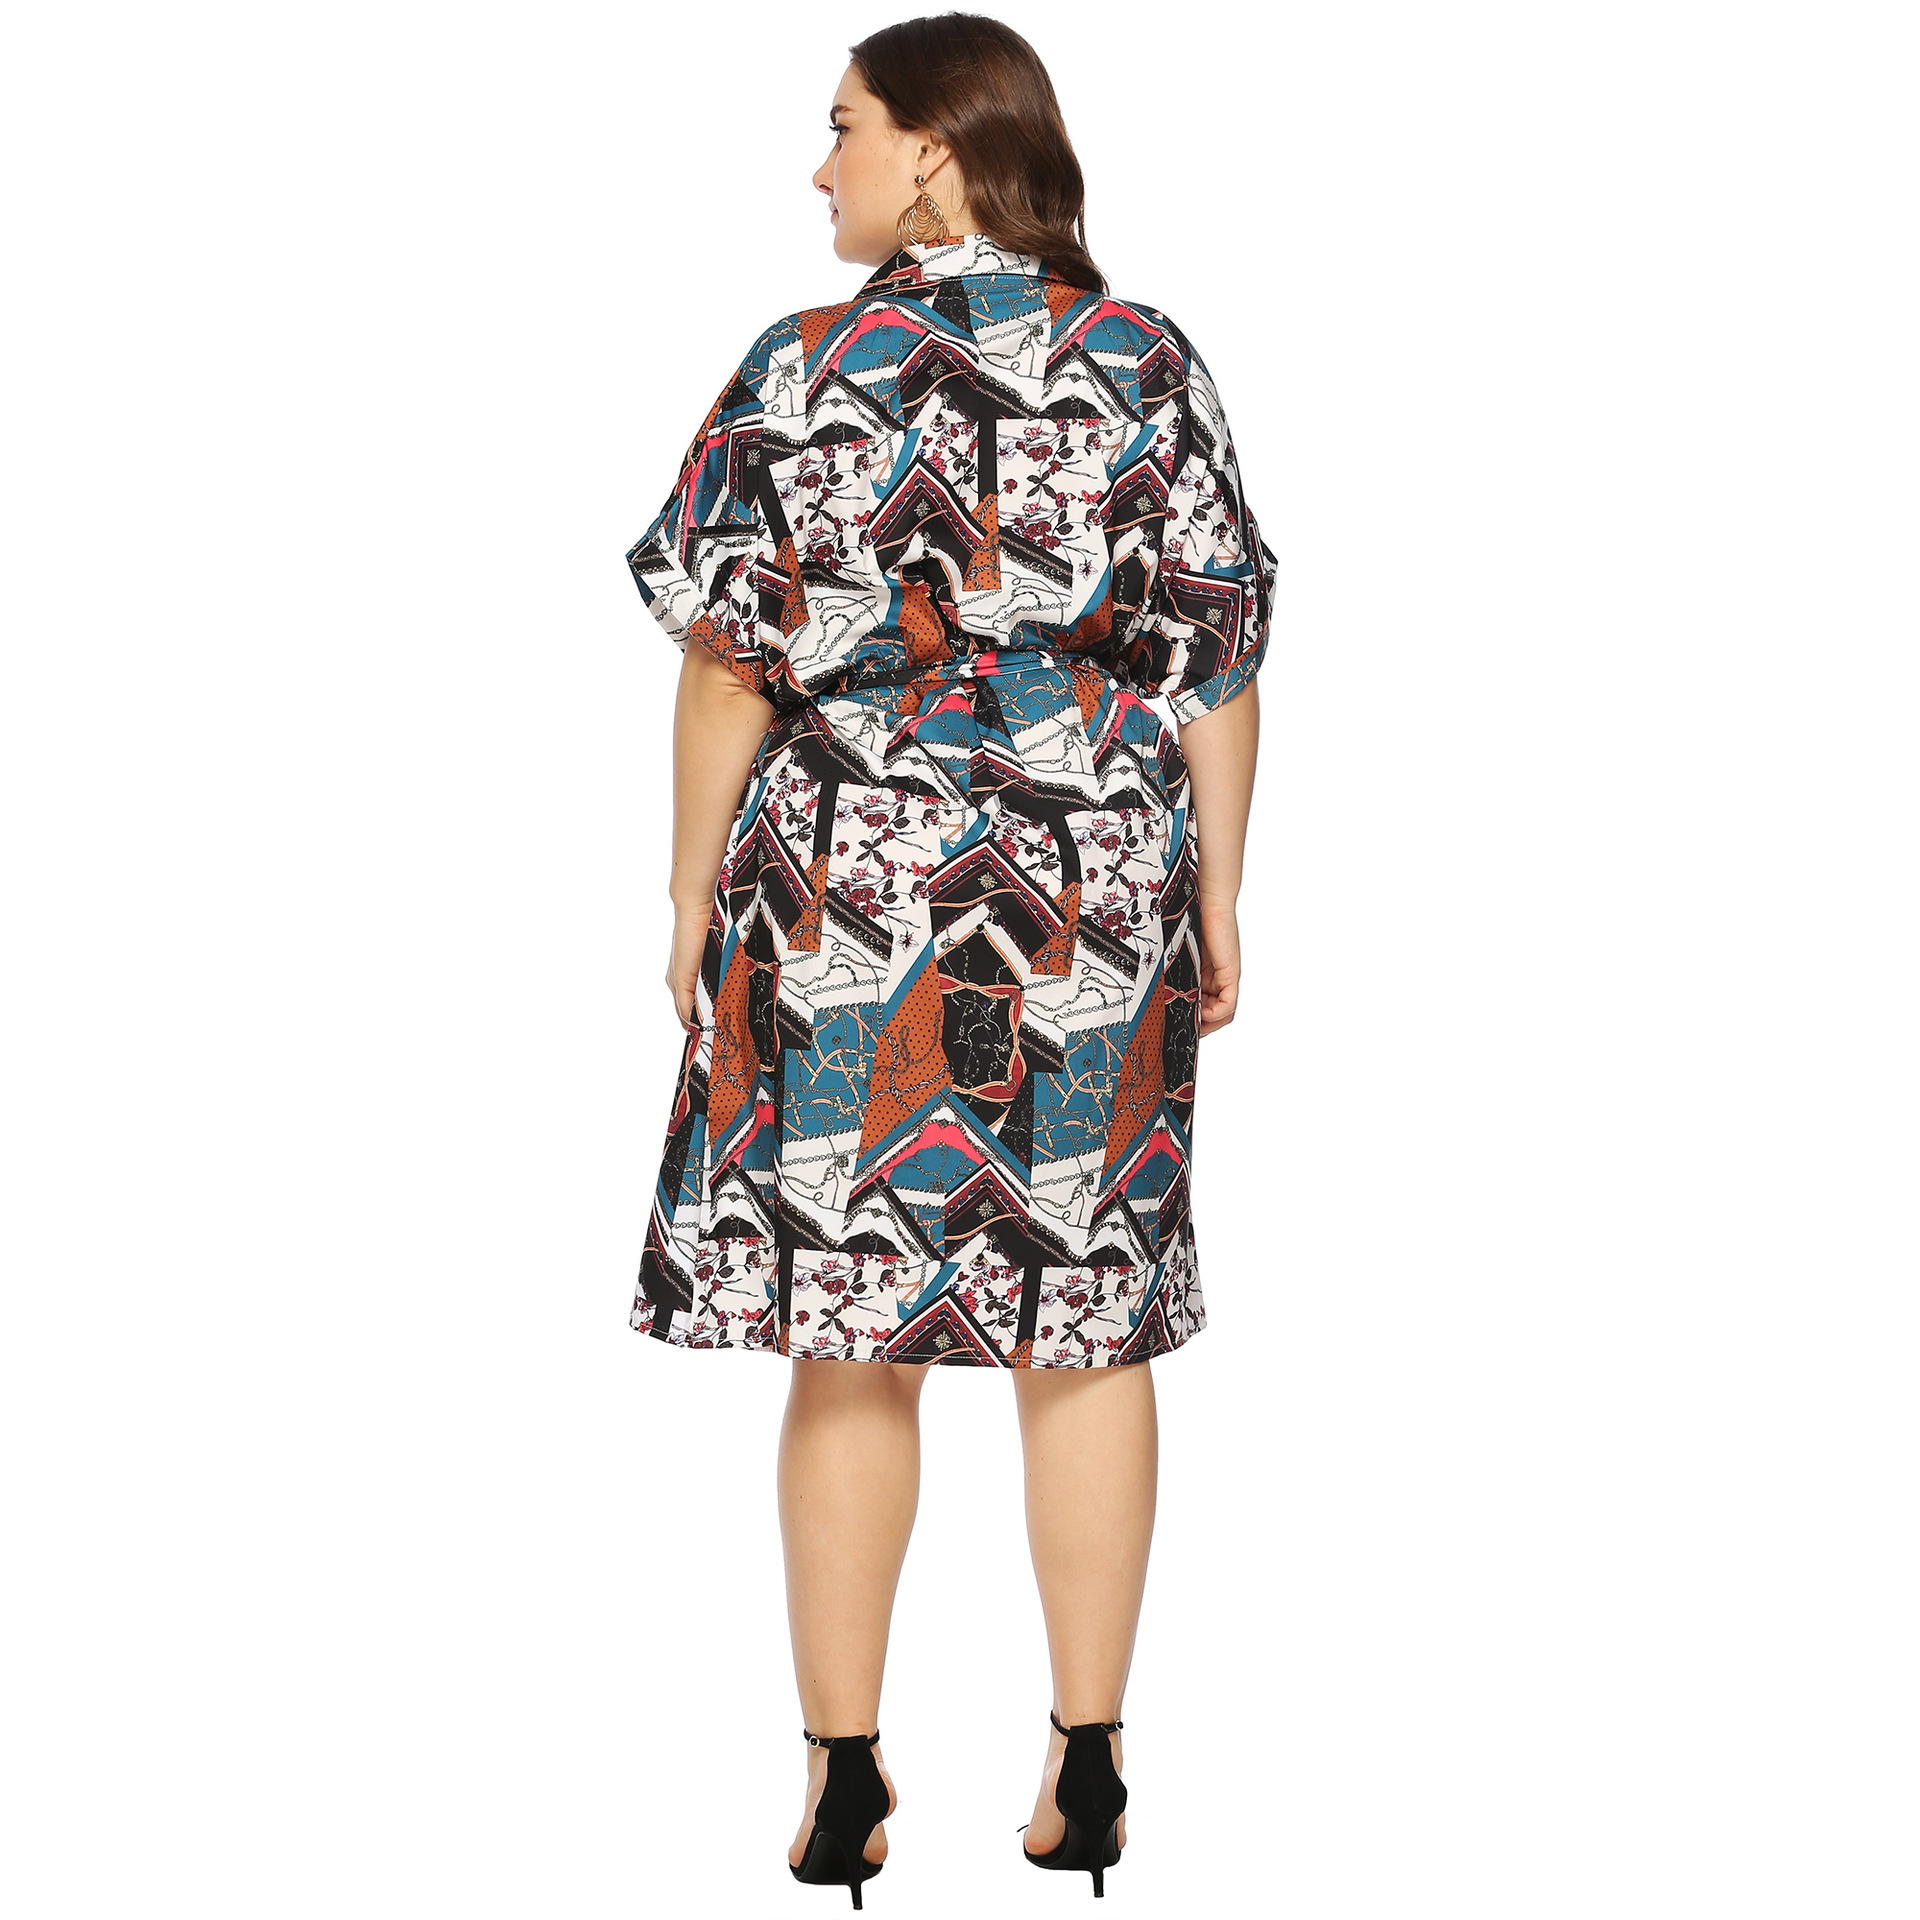 Large Size Retro Printed Bandage Cloth Dress Loose Short Sleeve Cardigan Shirt Cardigan Zt11509